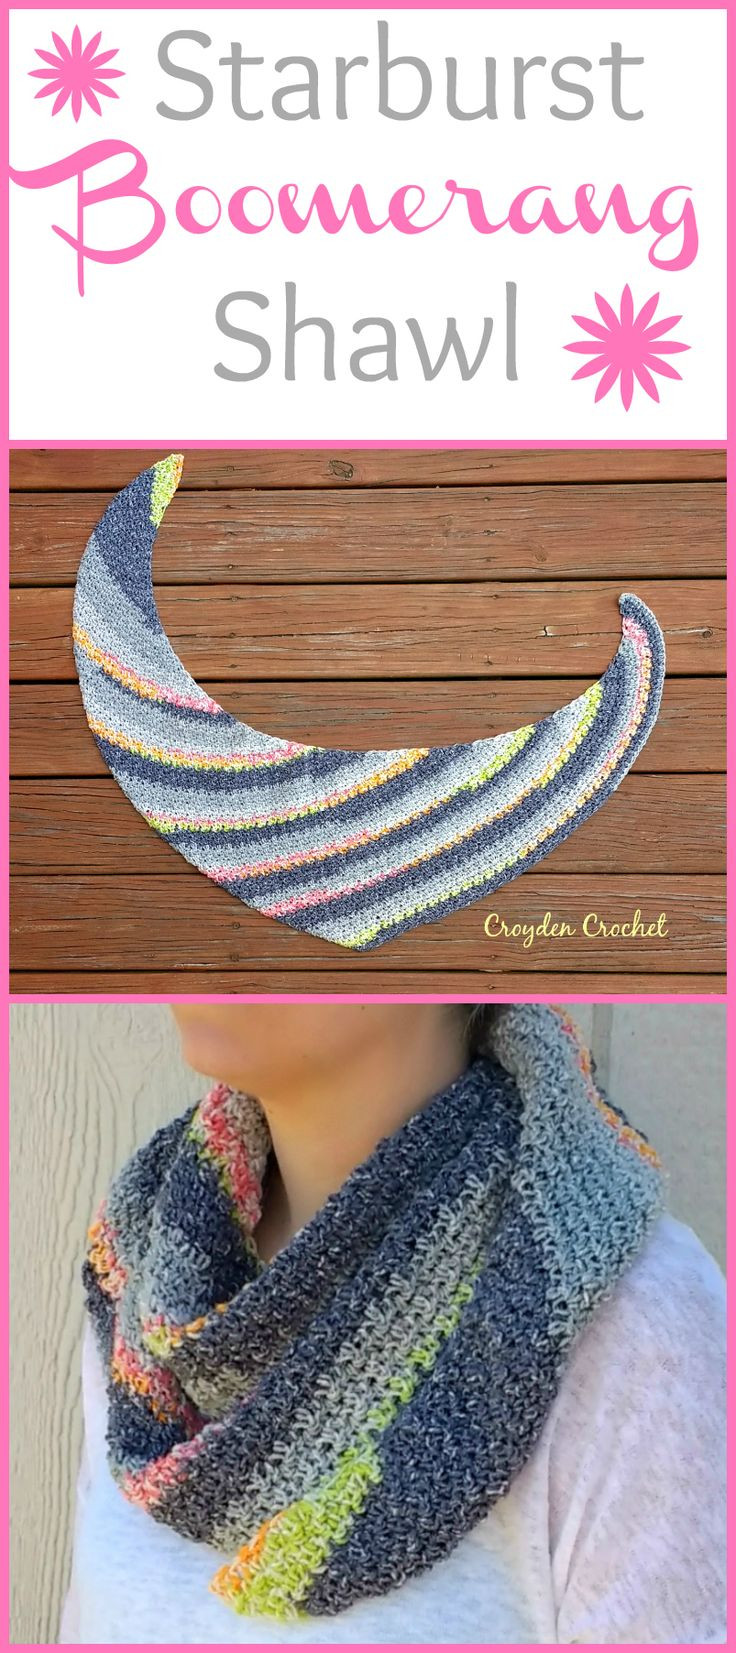 Crochet Shawl Pattern for Beginners Unique 57 Beginner Crochet Shawl Patterns Free Free Crochet Of Innovative 47 Images Crochet Shawl Pattern for Beginners